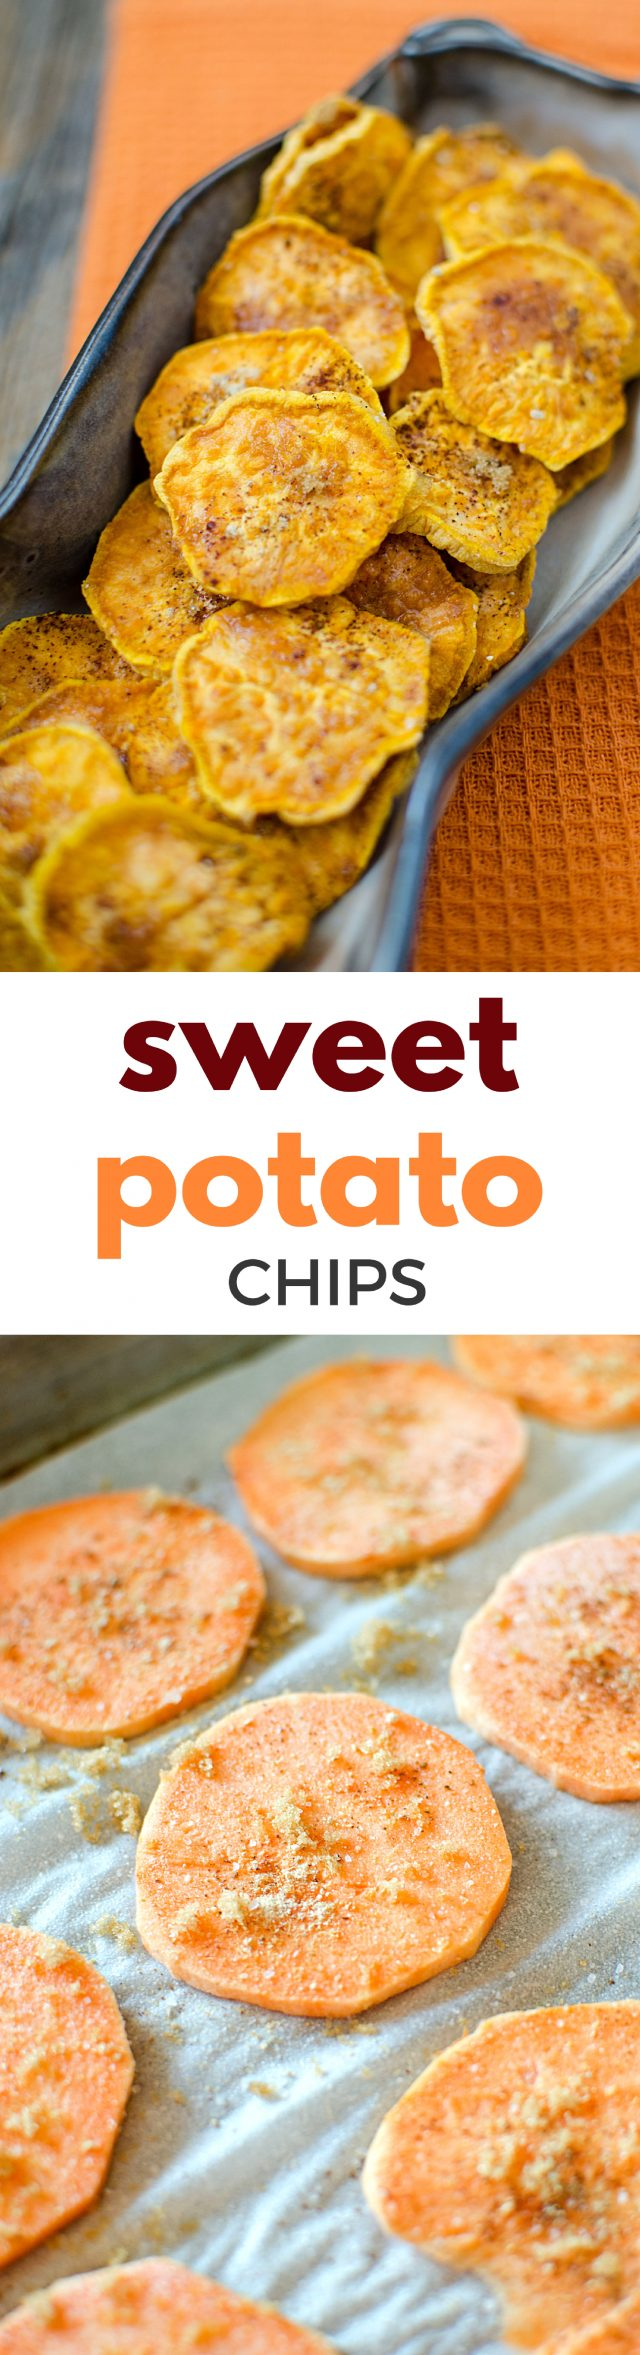 A warm cinnamon brown sugar sweet potato chip recipe that you will have a hard time not gobbling up! Perfect for a snack at home or a party with friends, these sweet potato chips are THE BOMB!